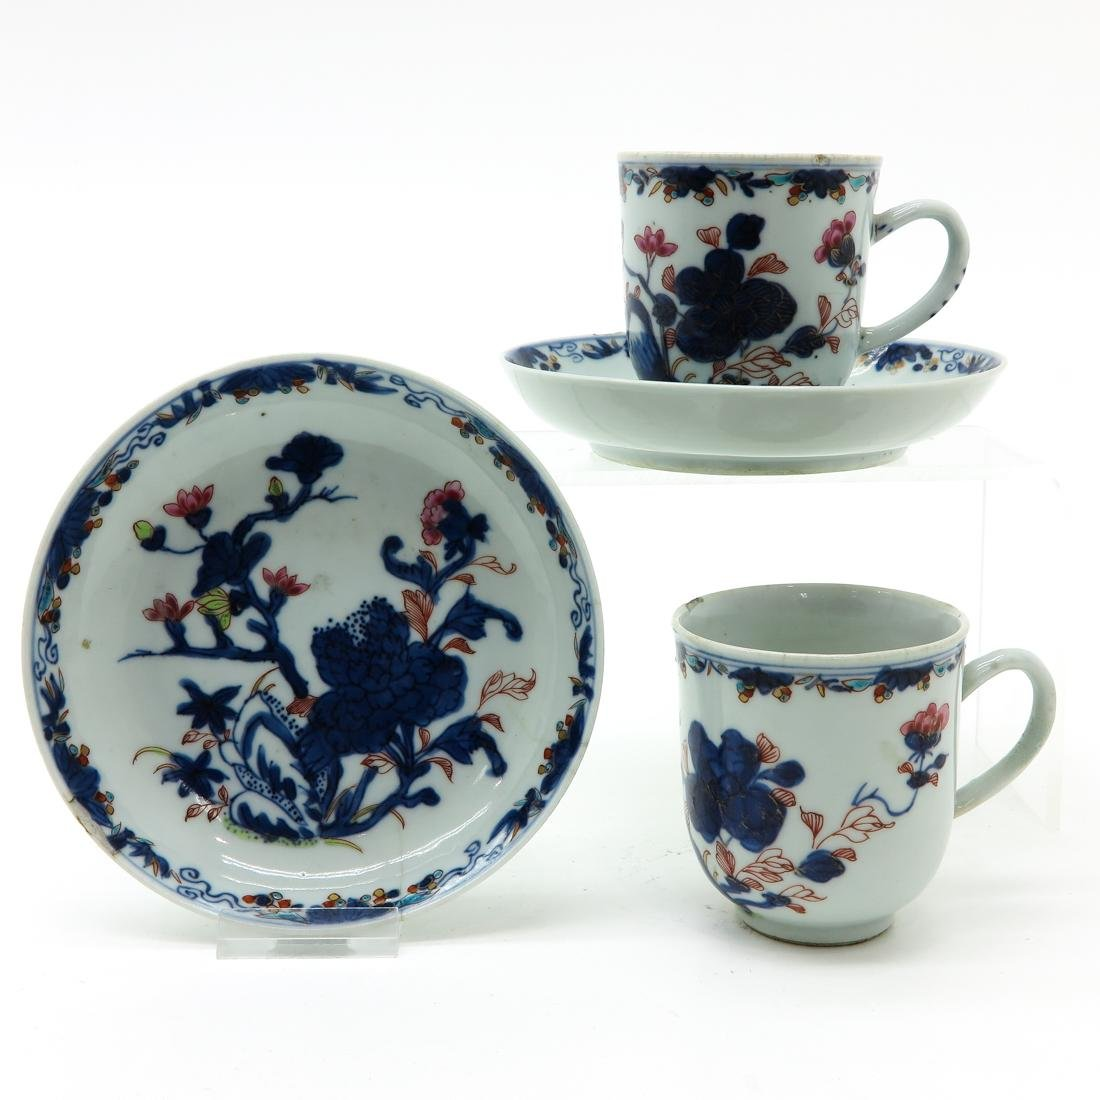 Lot of Cups and Saucers